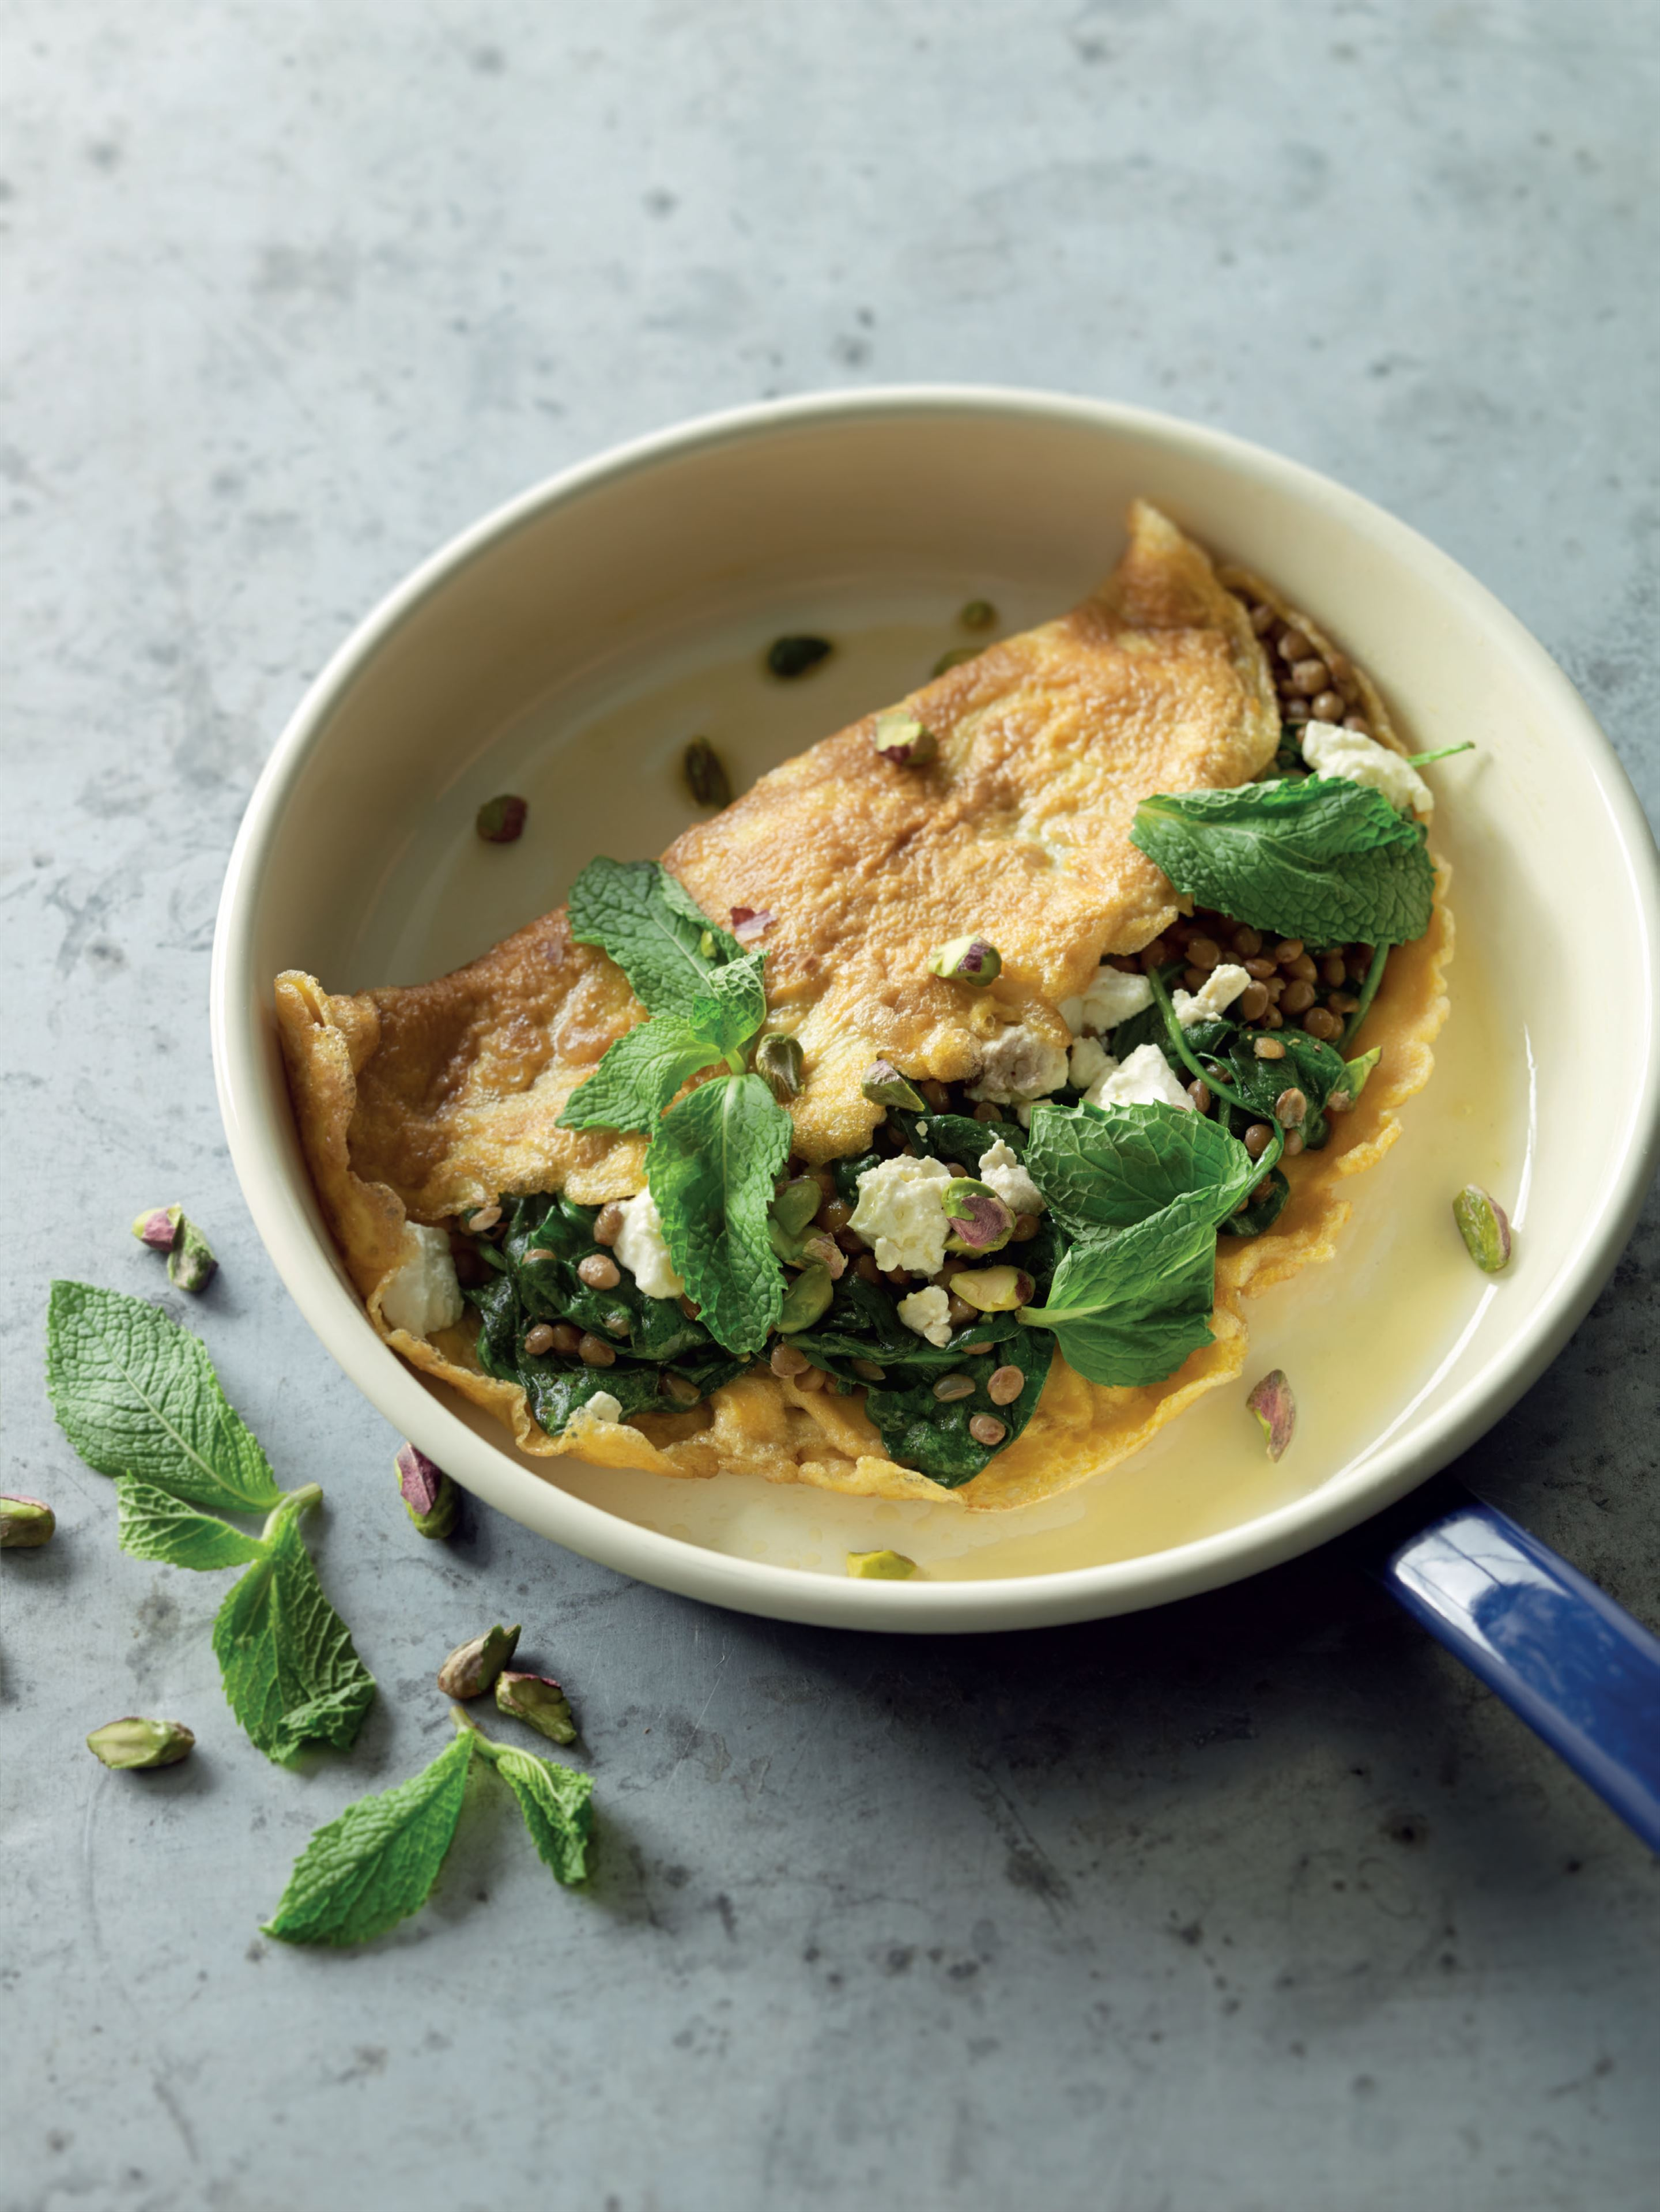 Feta, mint, lentil and pistachio omelettes